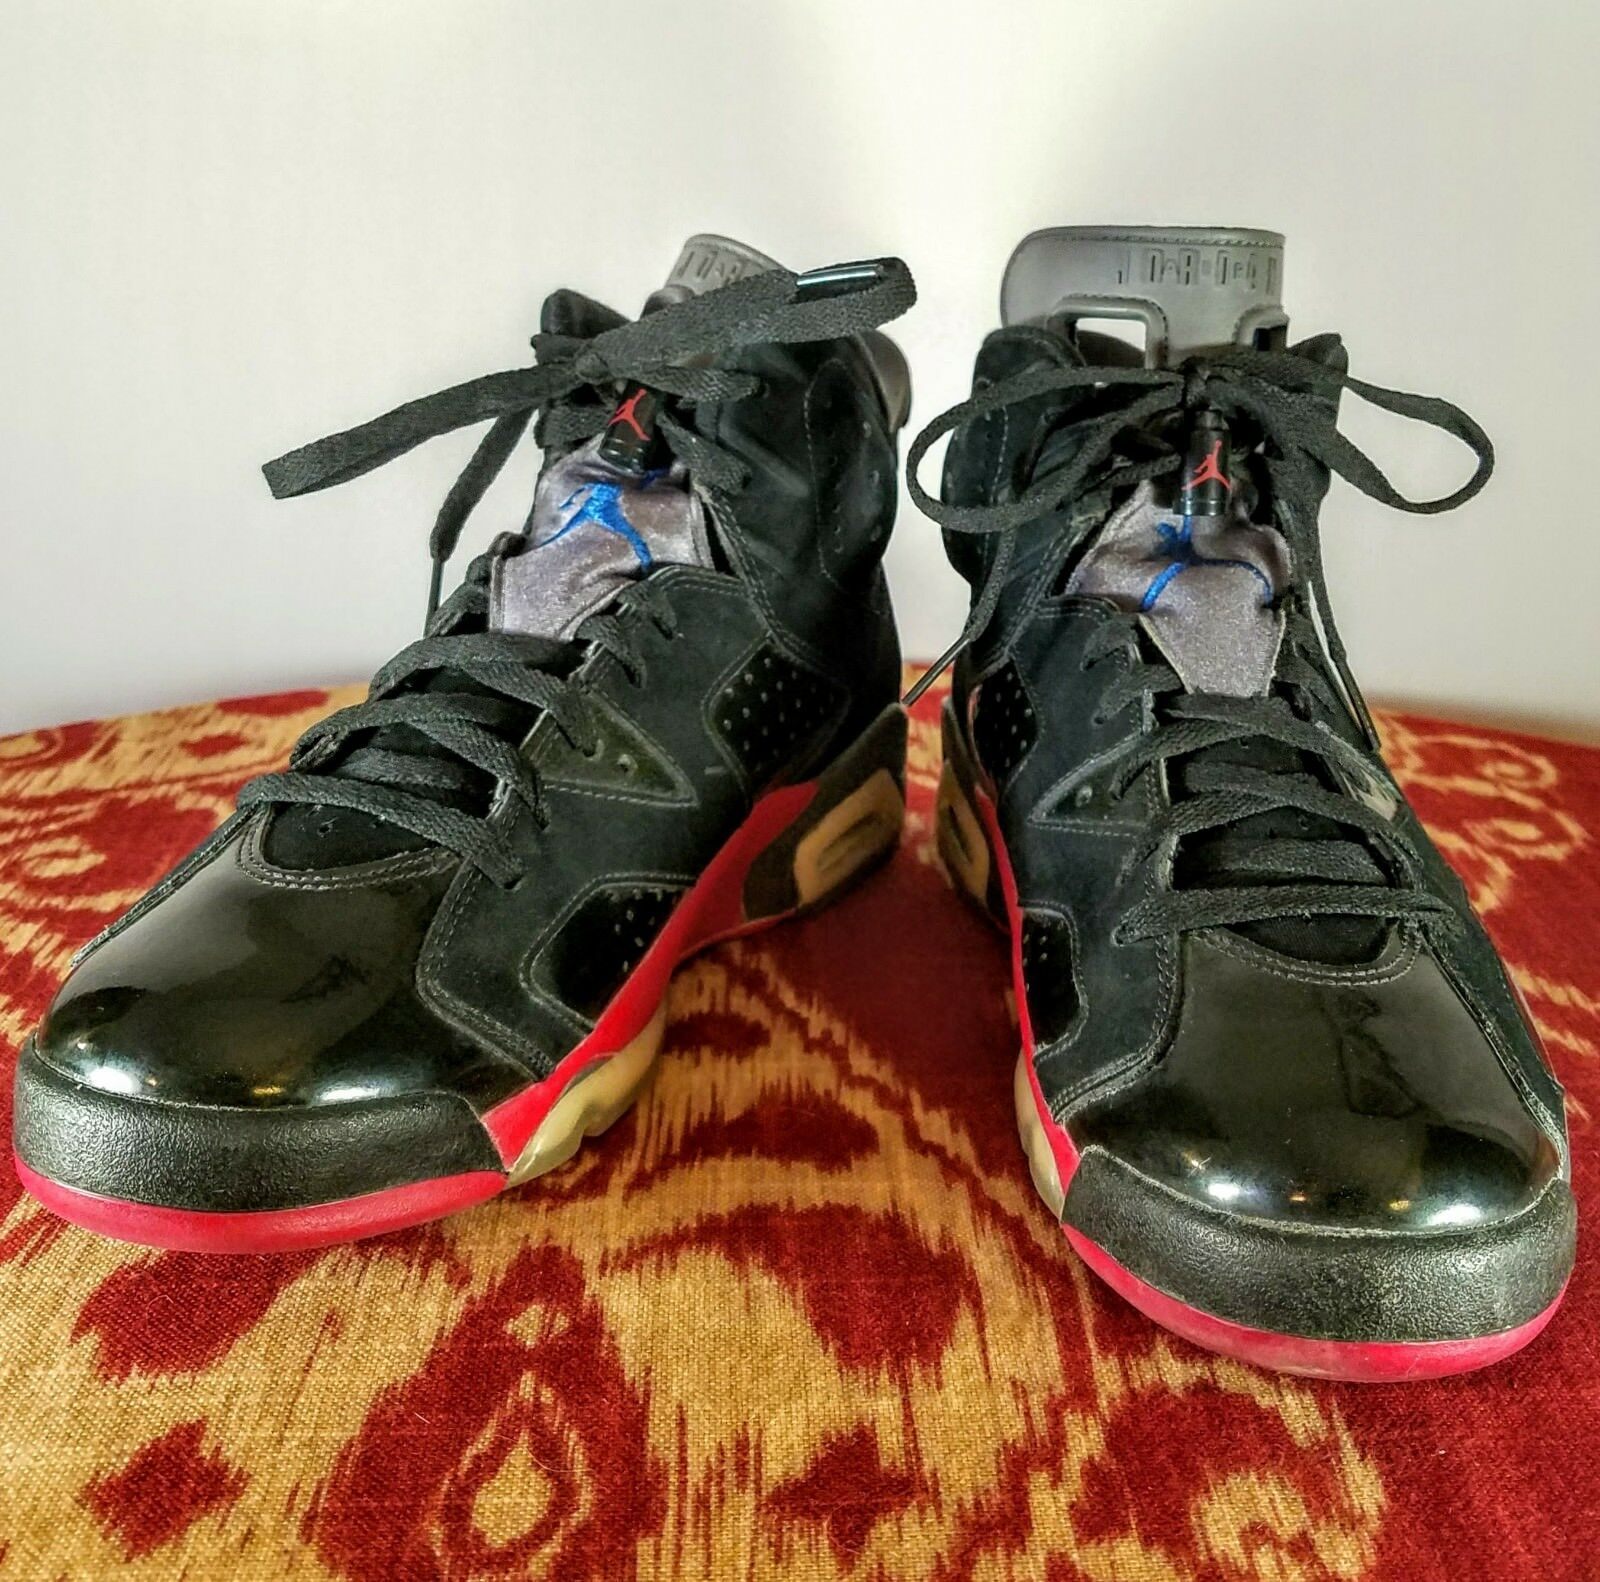 Nike - Air Jordan - VI 6 Retro Price reduction - Black Blue Red Pistons - Mens US 9 Special limited time